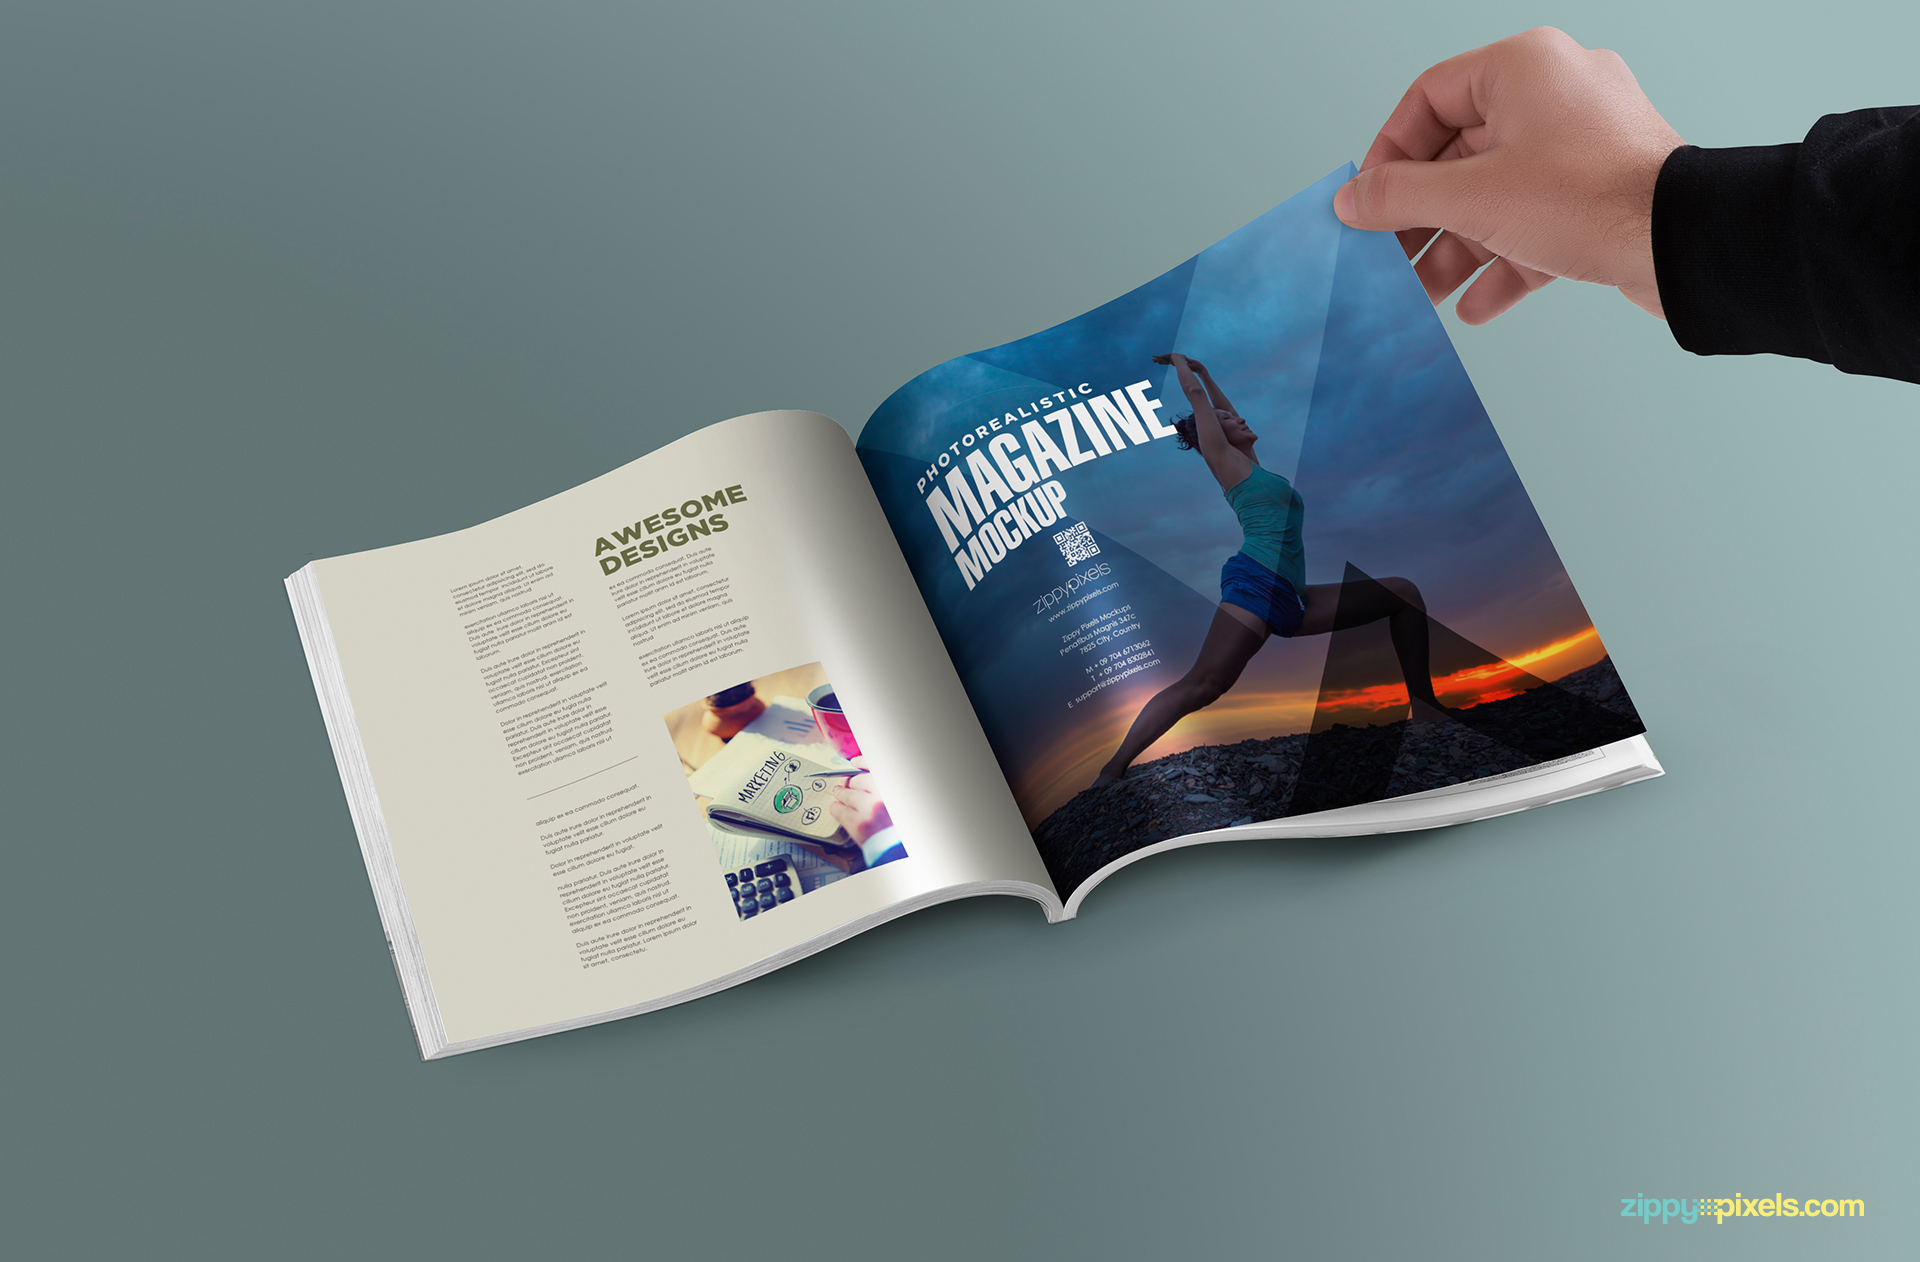 free psd magazine mockup in square layout